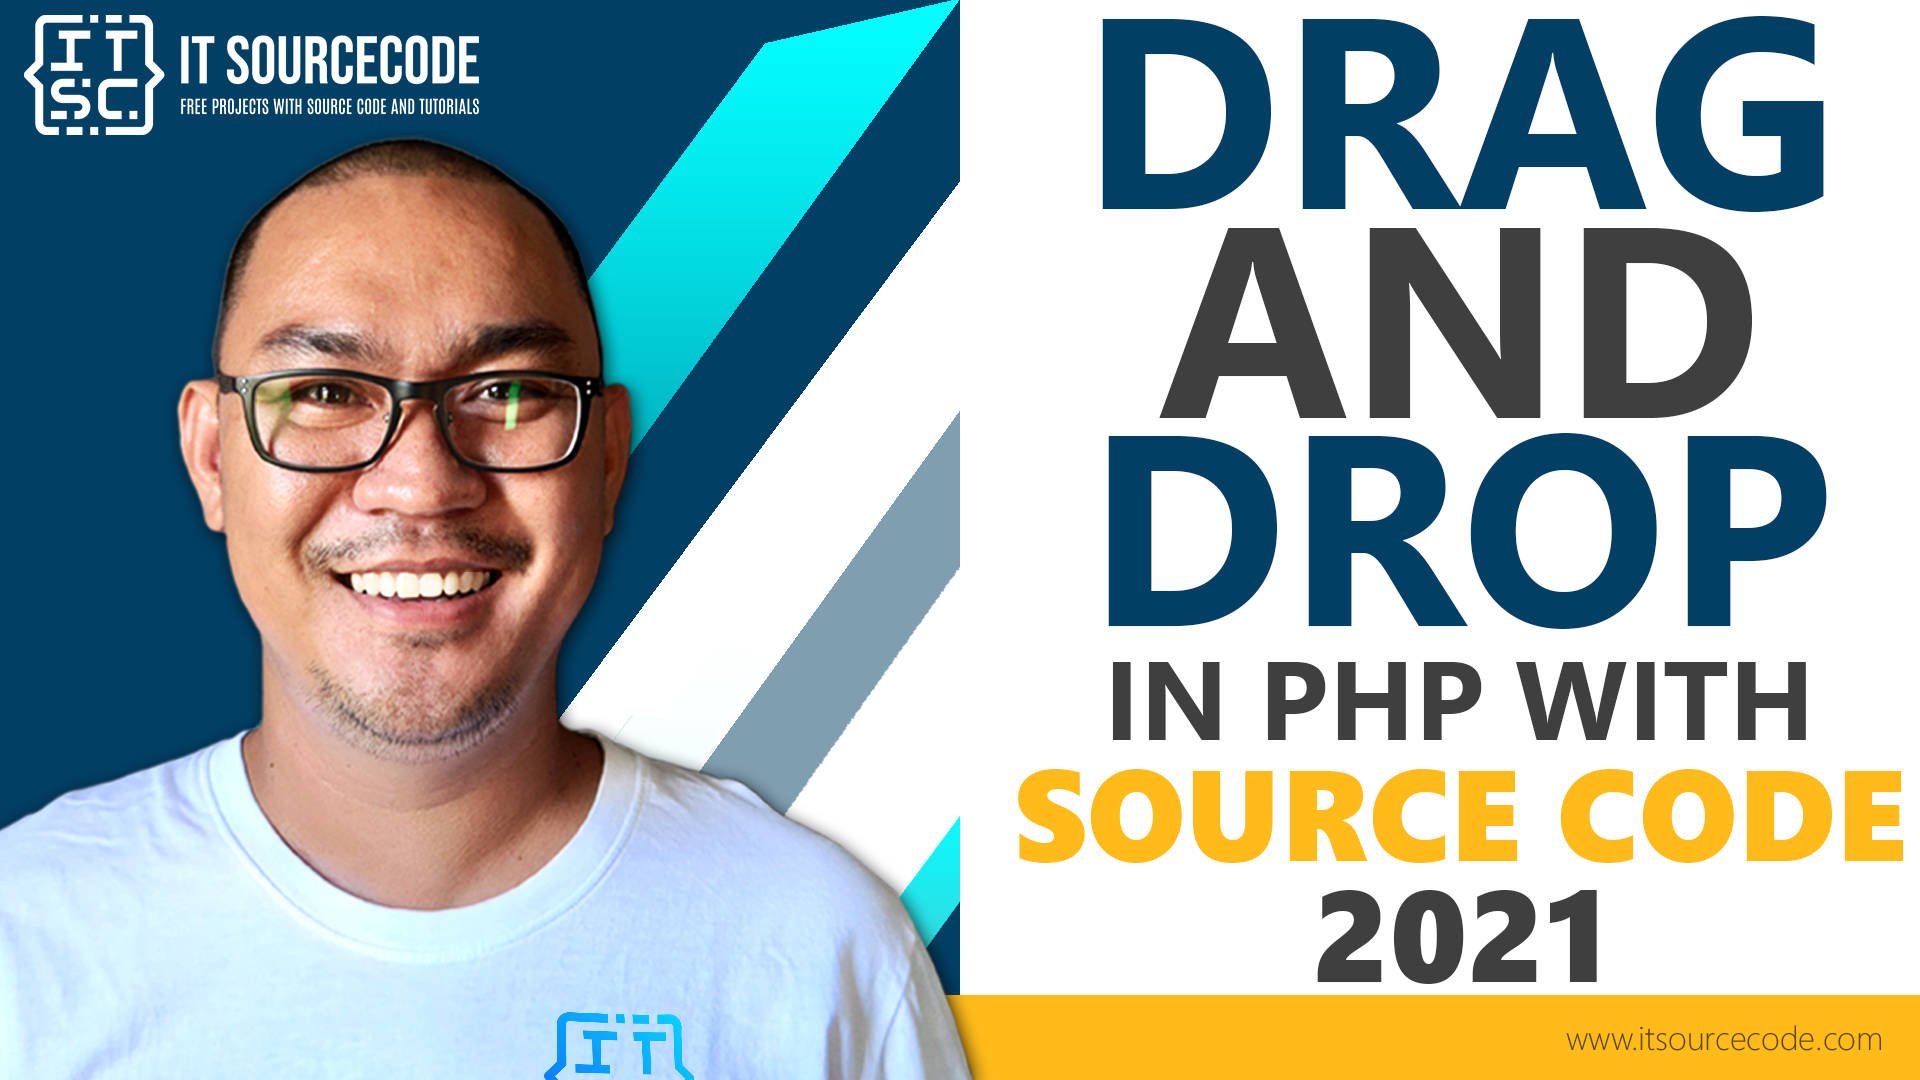 Drag and Drop in PHP with Source Code 2021